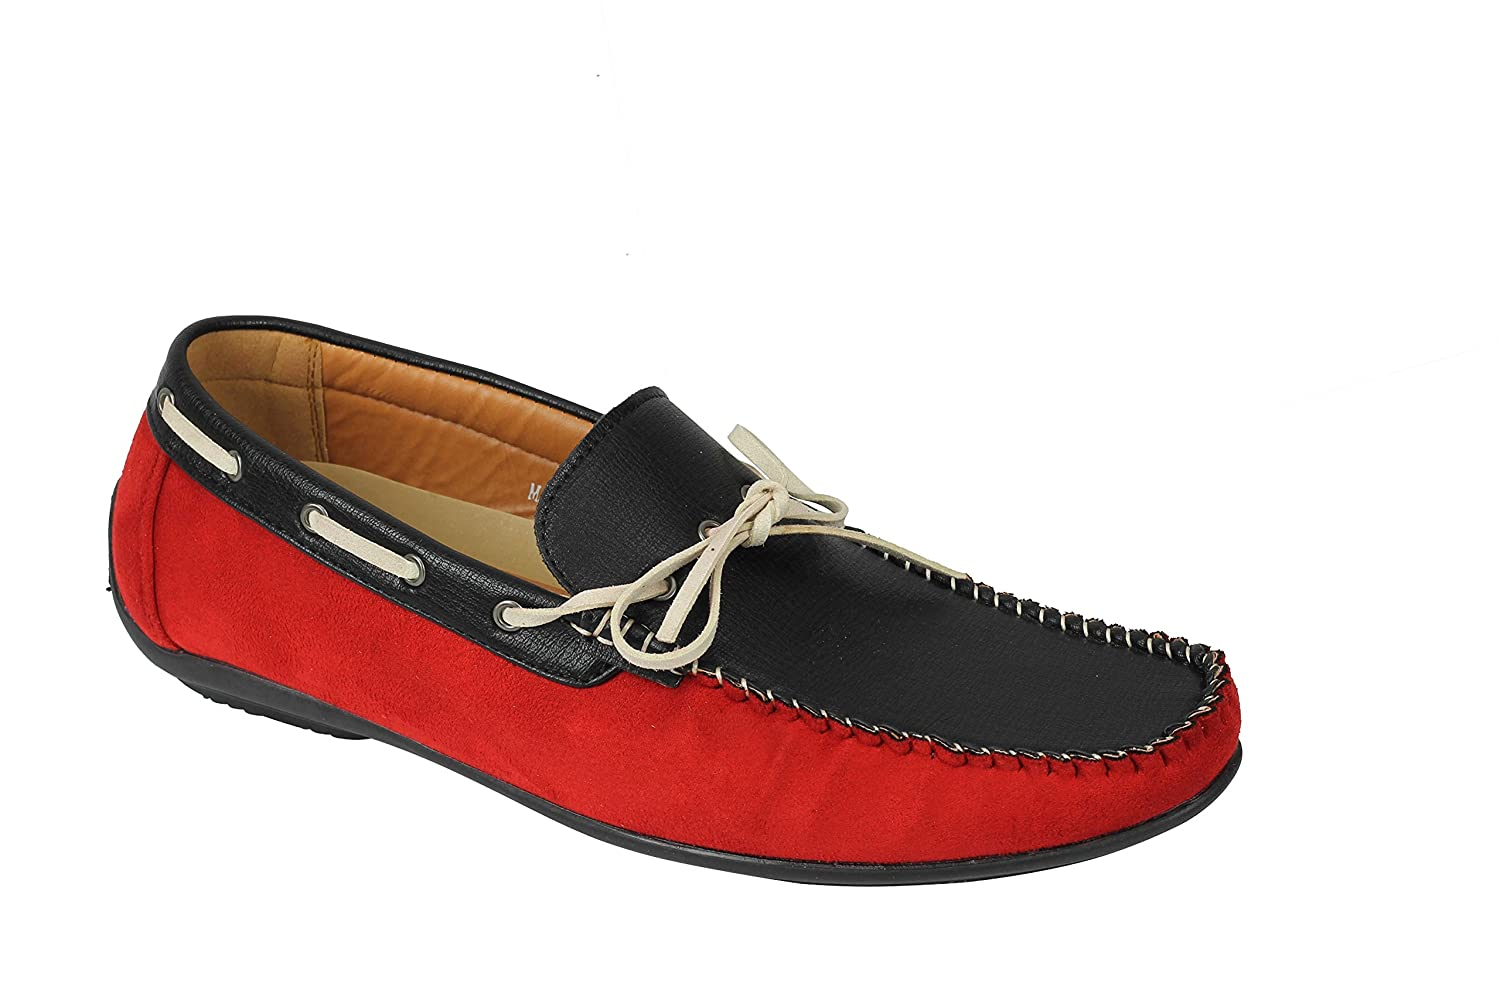 XPOSED New Mens Faux Leather 2 Tone Classic Slip On Driver Loafers Smart Casual Deck Boat Shoes UK Size